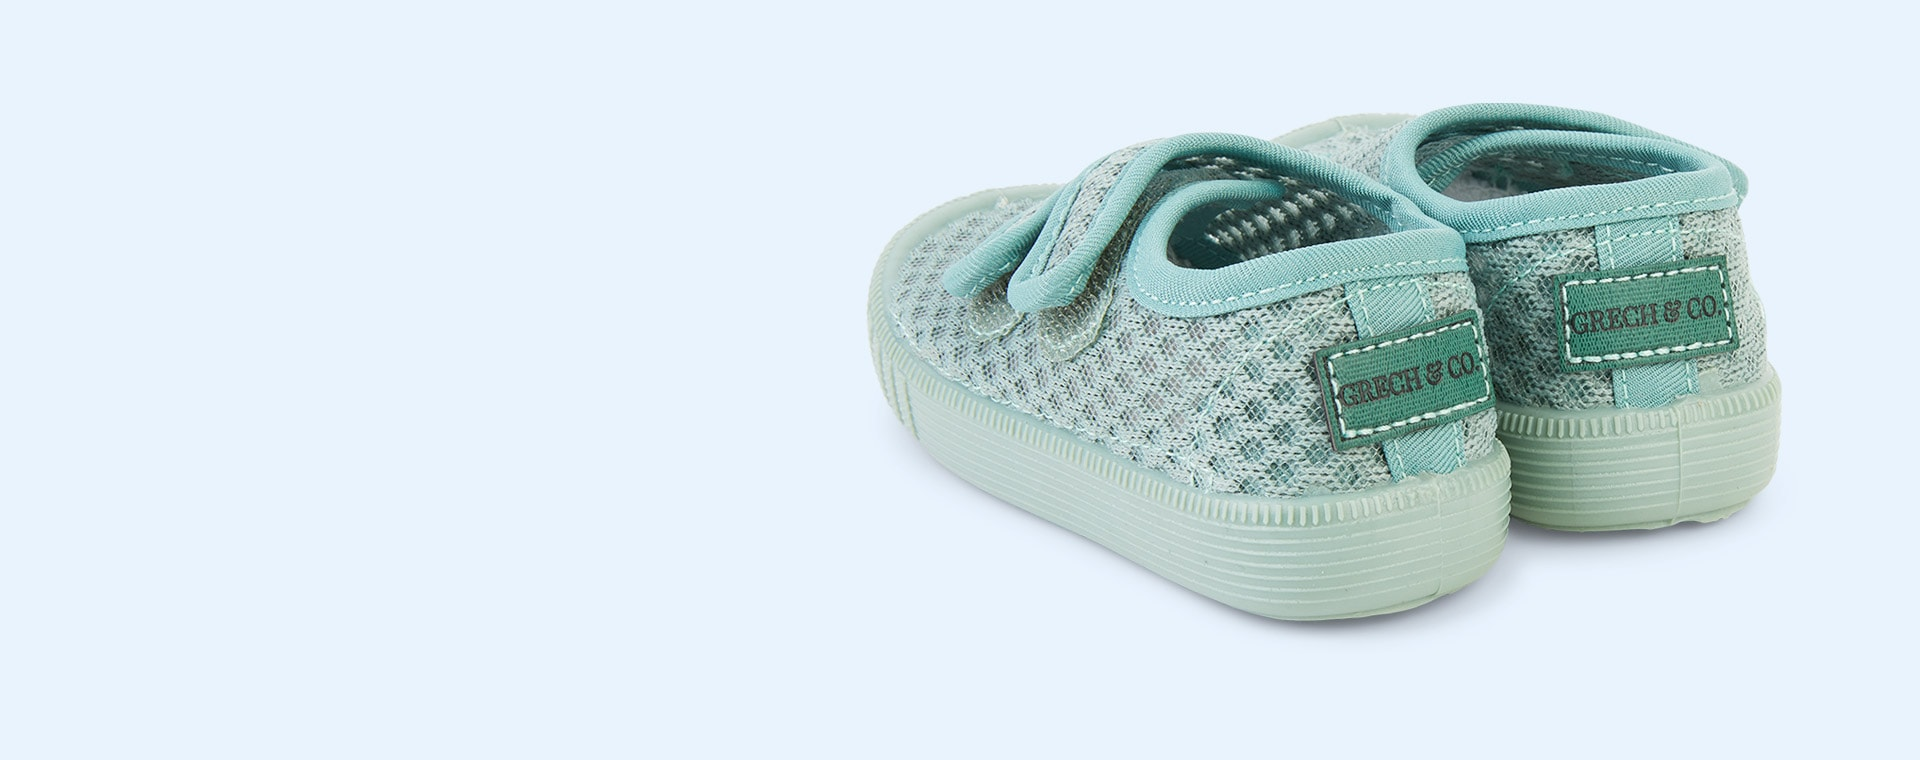 Fern Grech & Co Shoesies Play Shoes